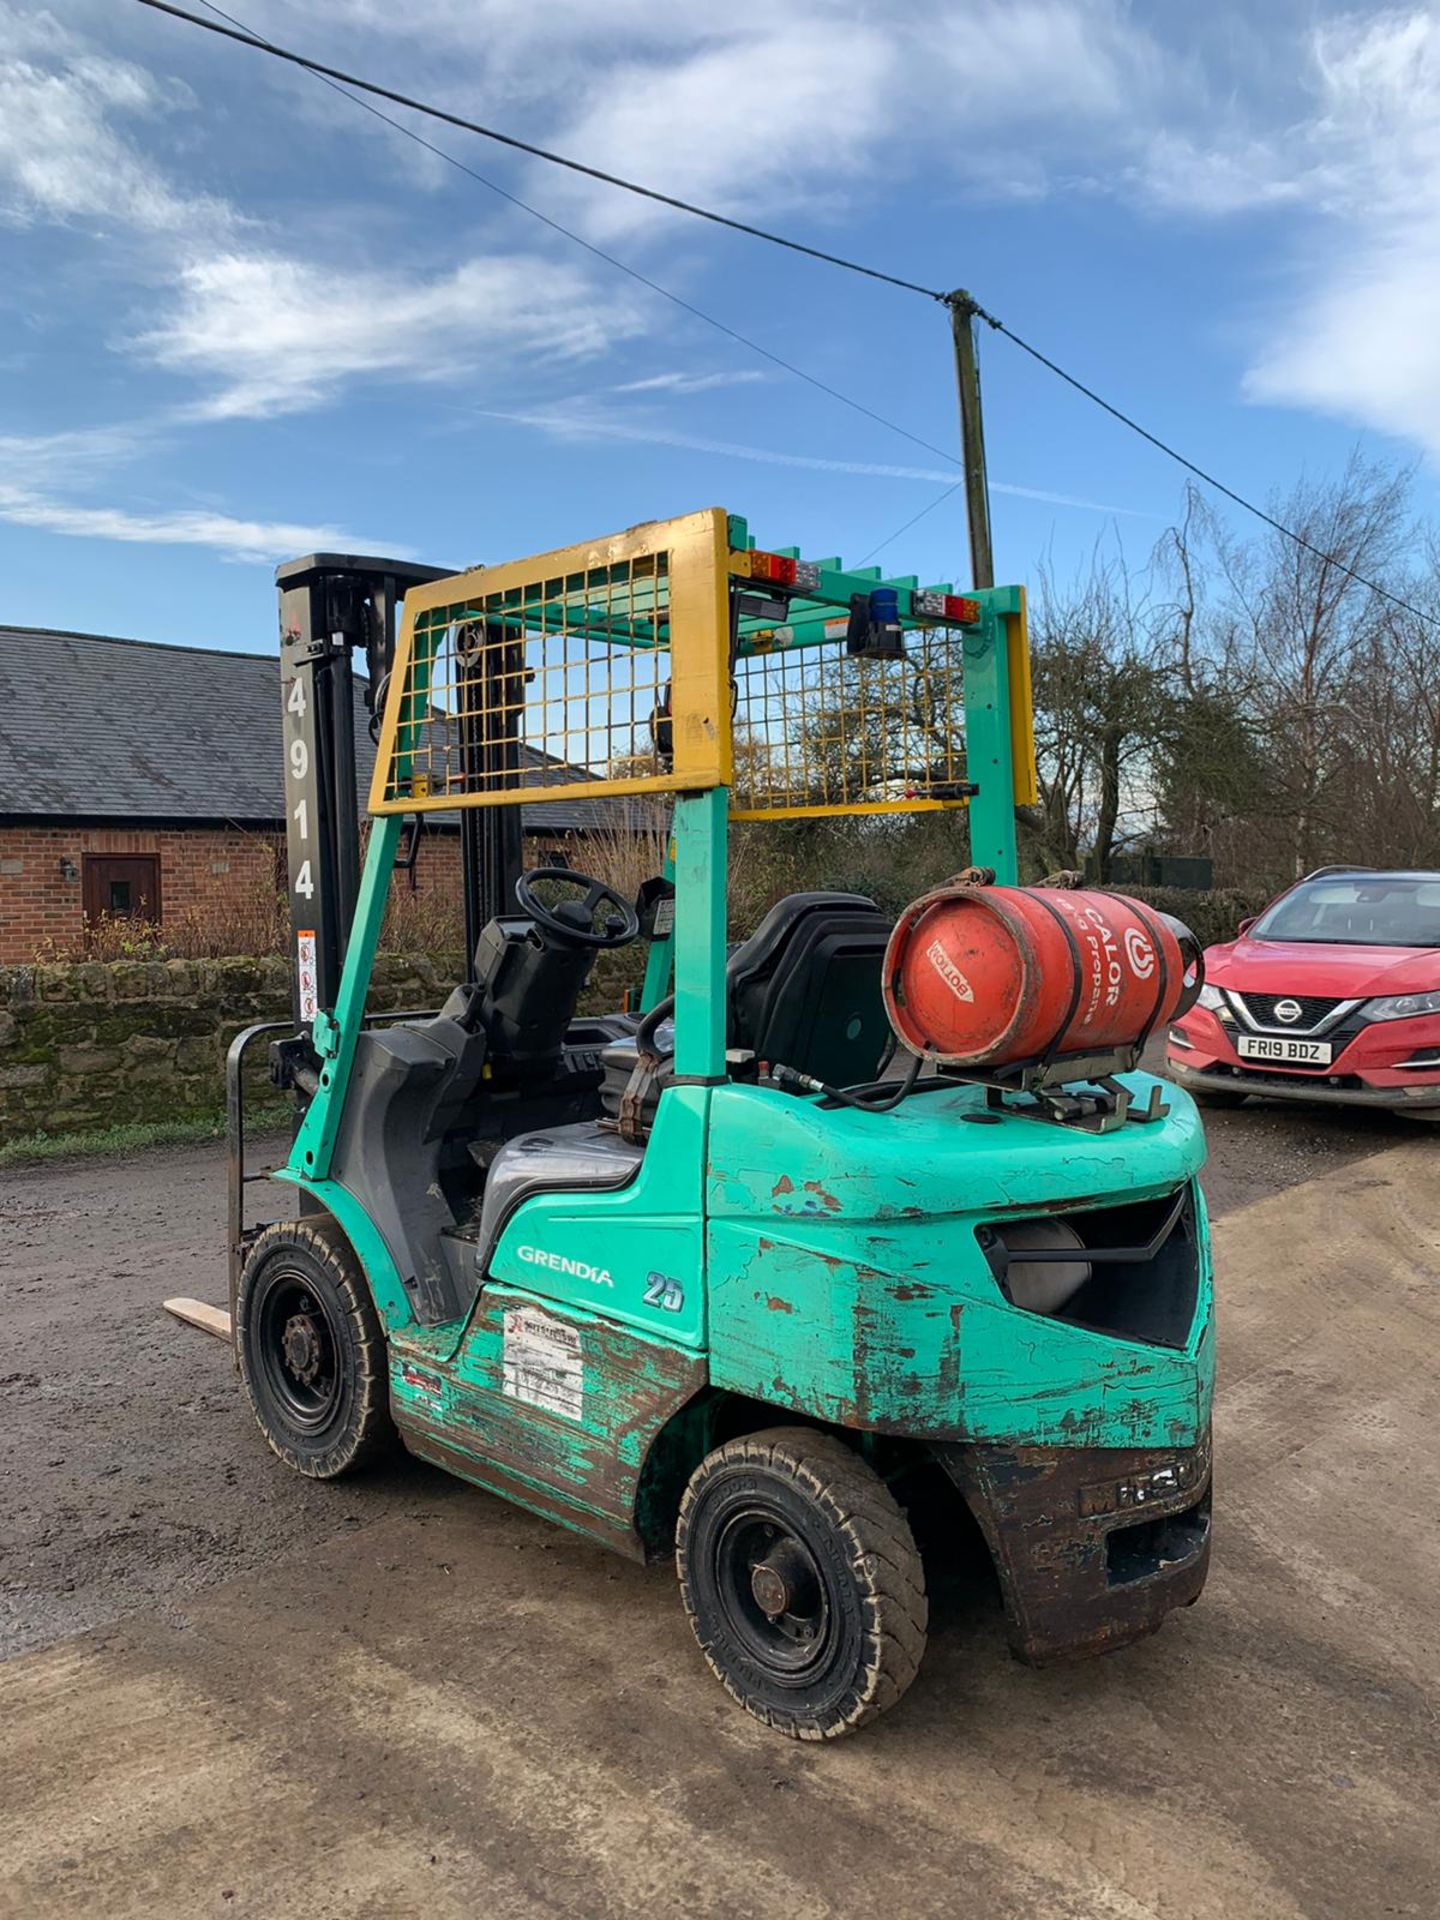 2015 MITSUBISHI FG25NT GAS FORKLIFT, RUNS, DRIVES, LIFTS, CLEAN MACHINE, SIDE SHIFT, CONTAINER SPEC - Image 4 of 5